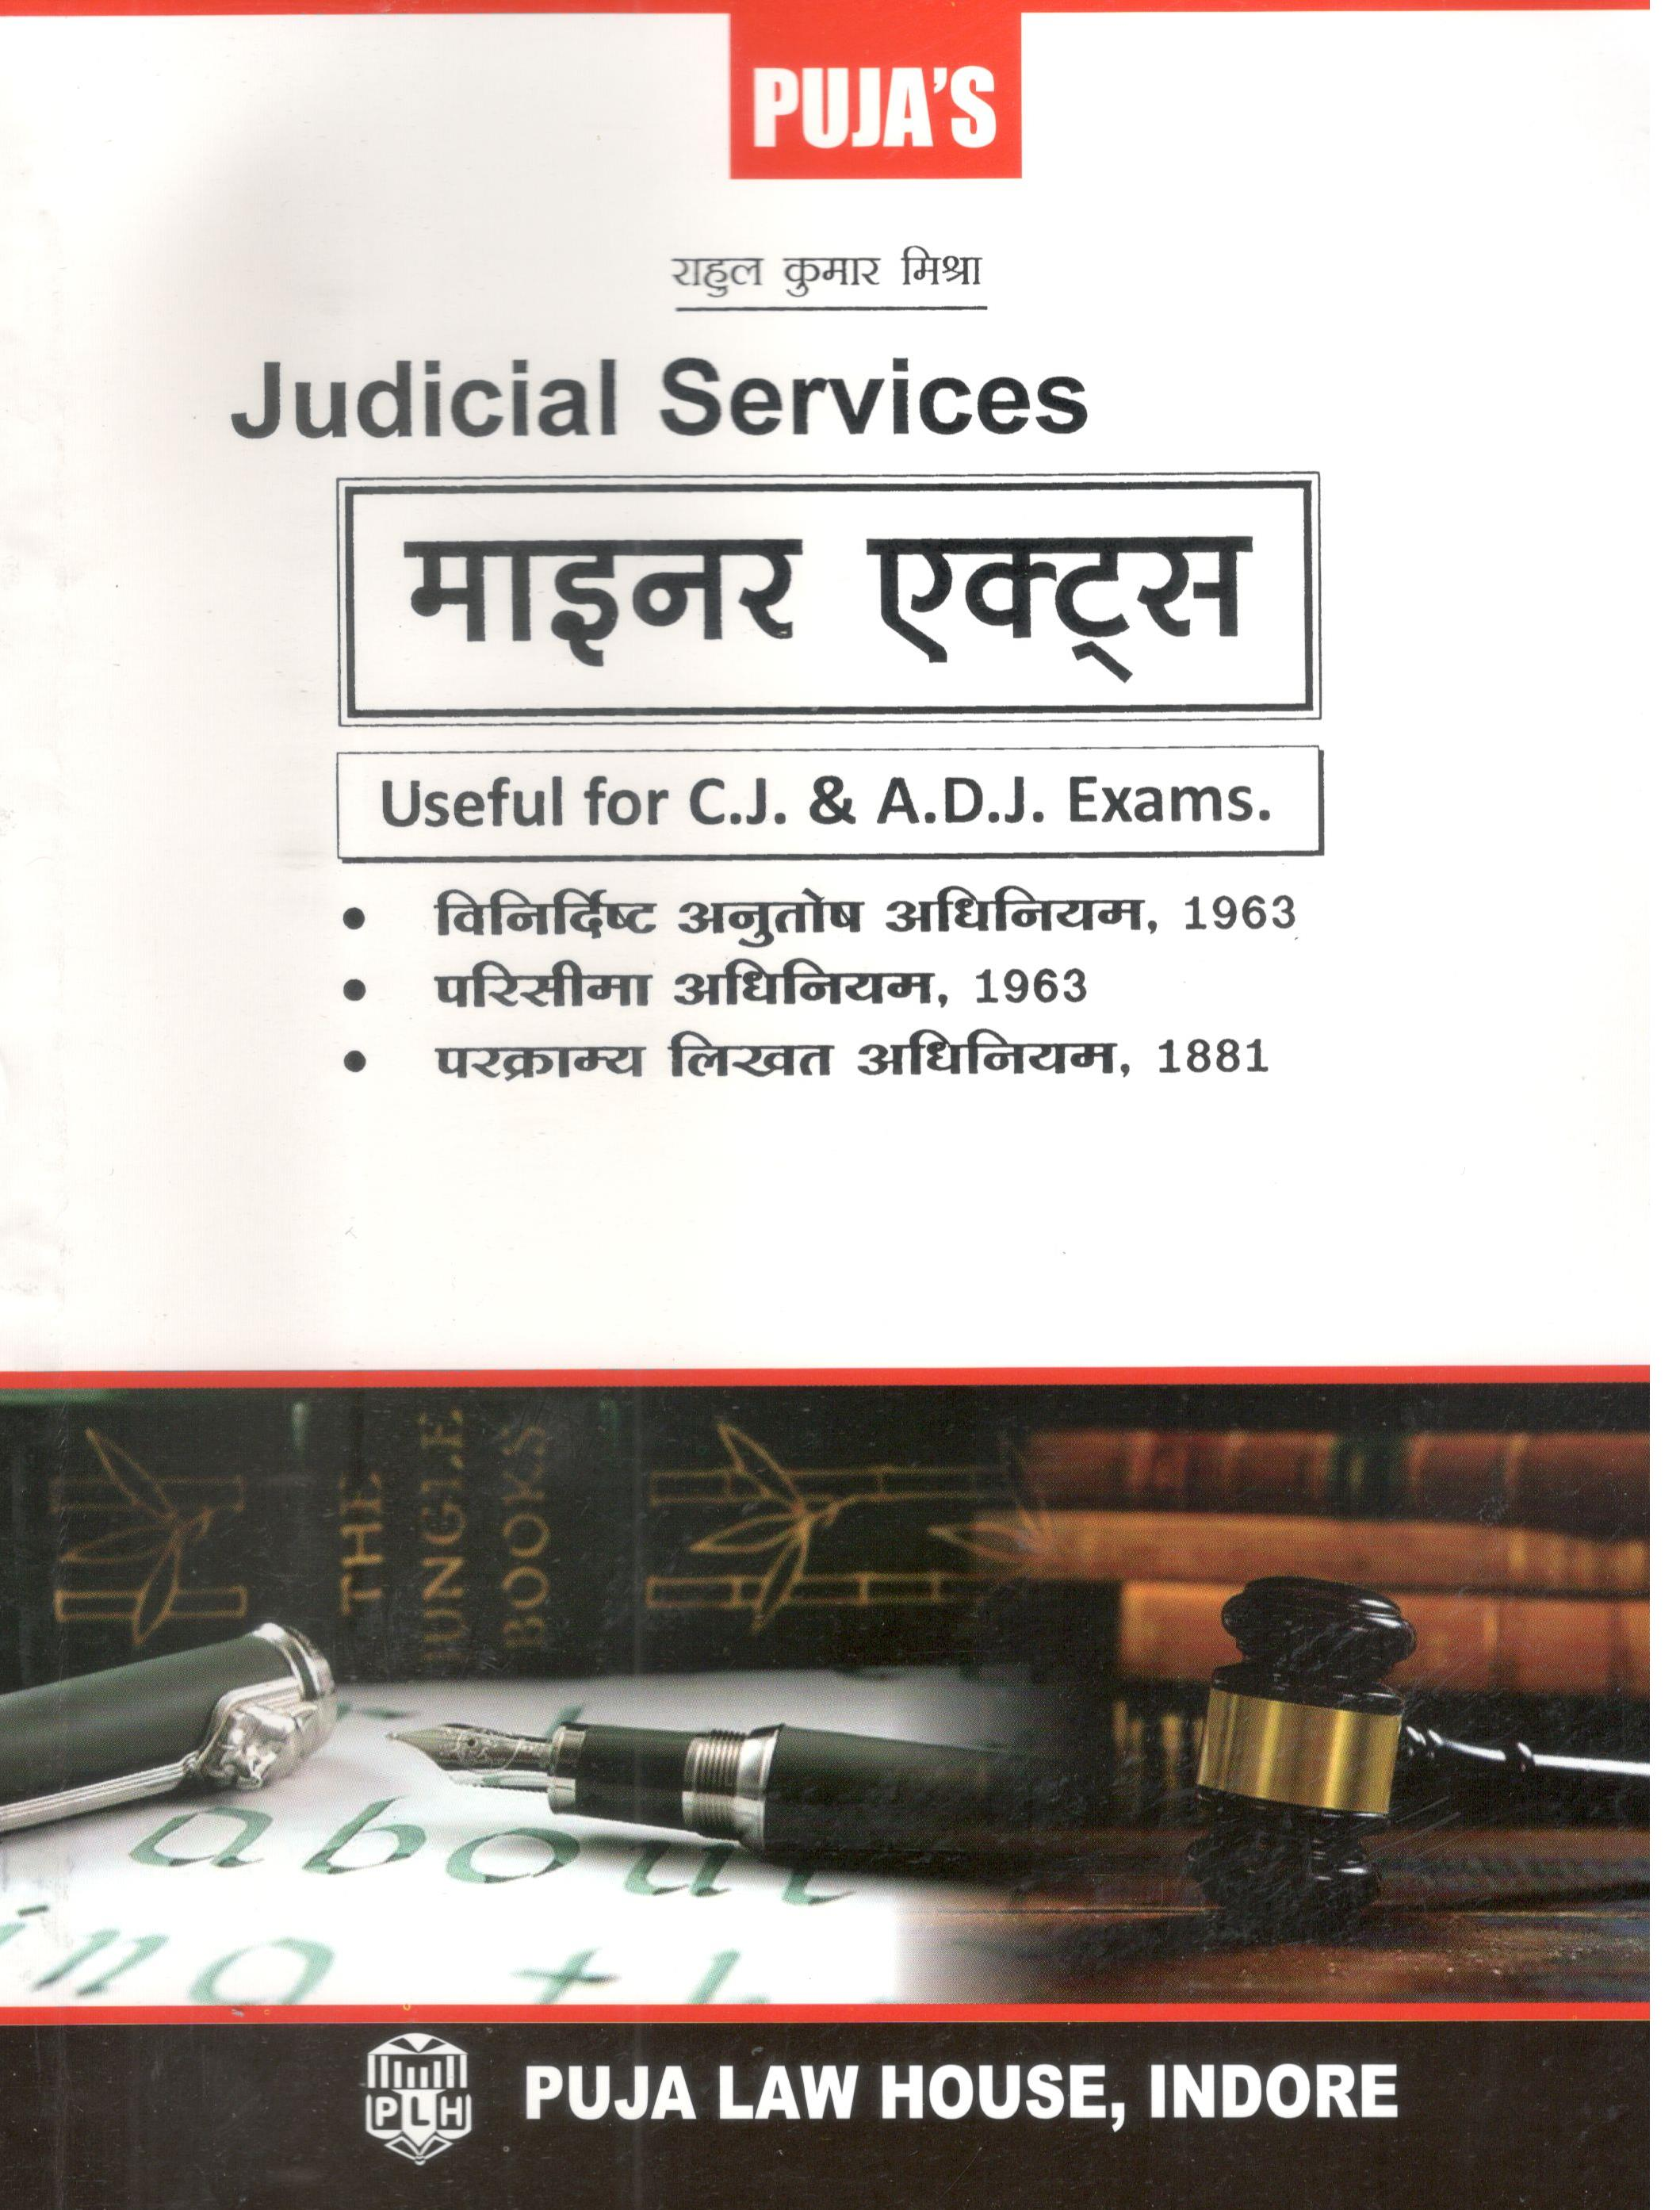 Buy राह�ल मिश�रा - Judicial Services - Minor Acts परिसीमा अधिनियम, 1963, विनिर�दिष�ट अन�तोष अधिनियम, 1963 और परक�राम�य लिखत अधिनियम, 1881 / Limitation Act, 1963, Specific Relief Act, 1963 and Negotiable Instrument Act, 1881